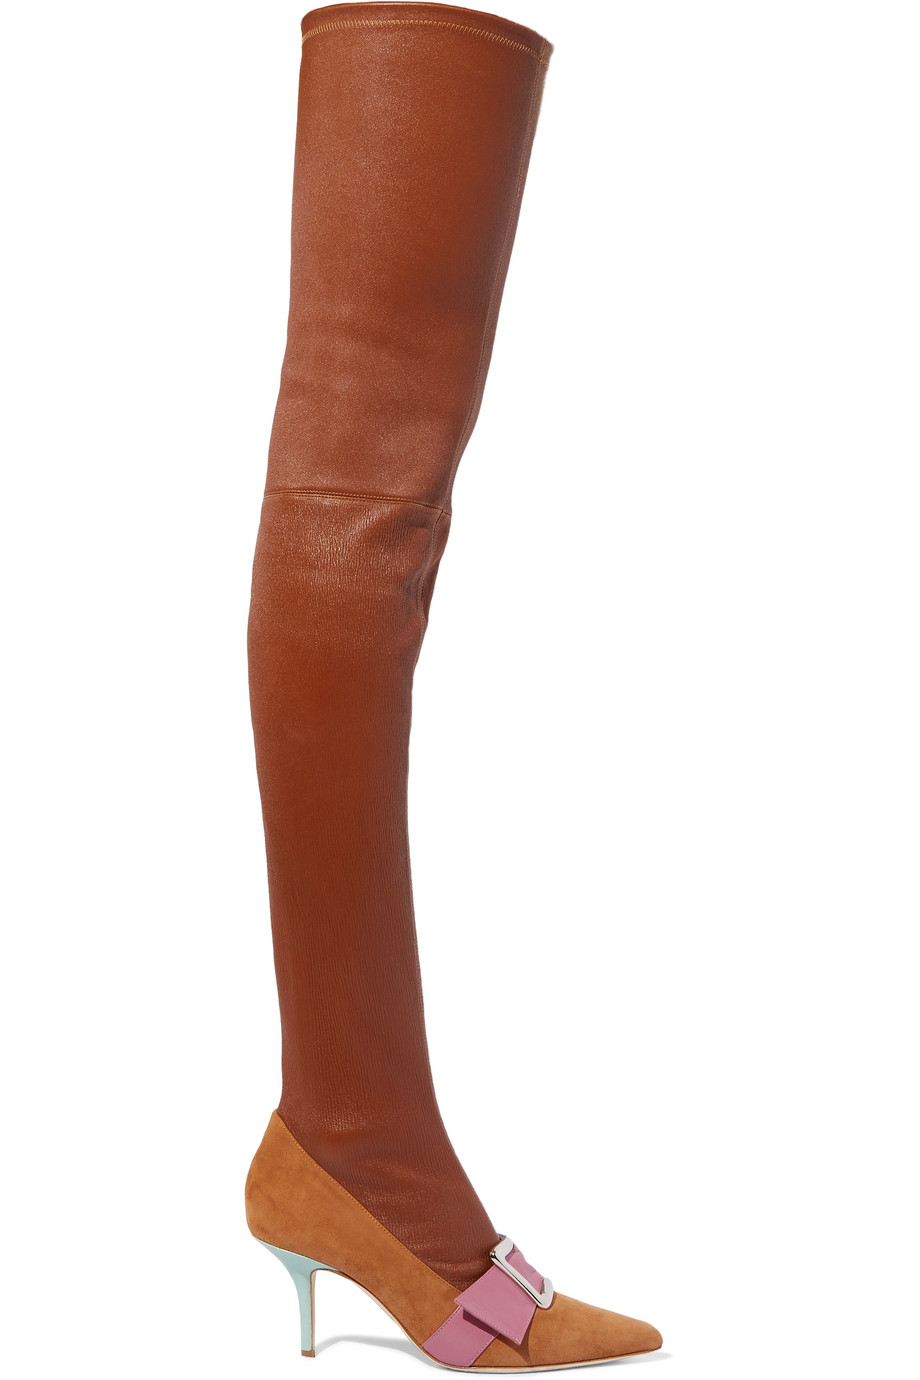 MALONE SOULIERS + Adam Lippes Emma Buckled Leather And Suede Over-The-Knee Boots